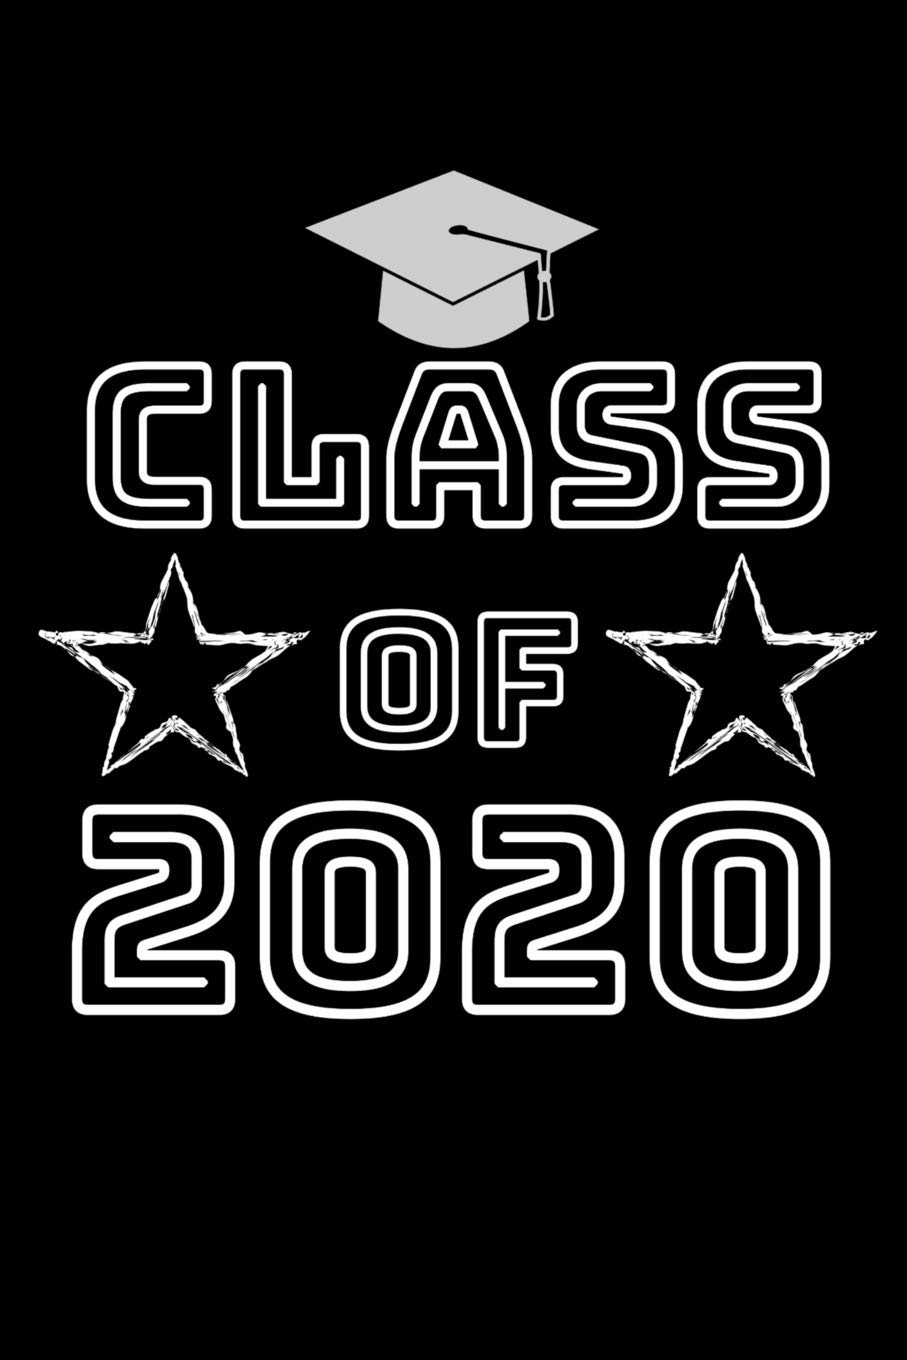 Graduation Background 2020.Class Of 2020 Weekly Planner 6 X 9 Notebook 120 Lined